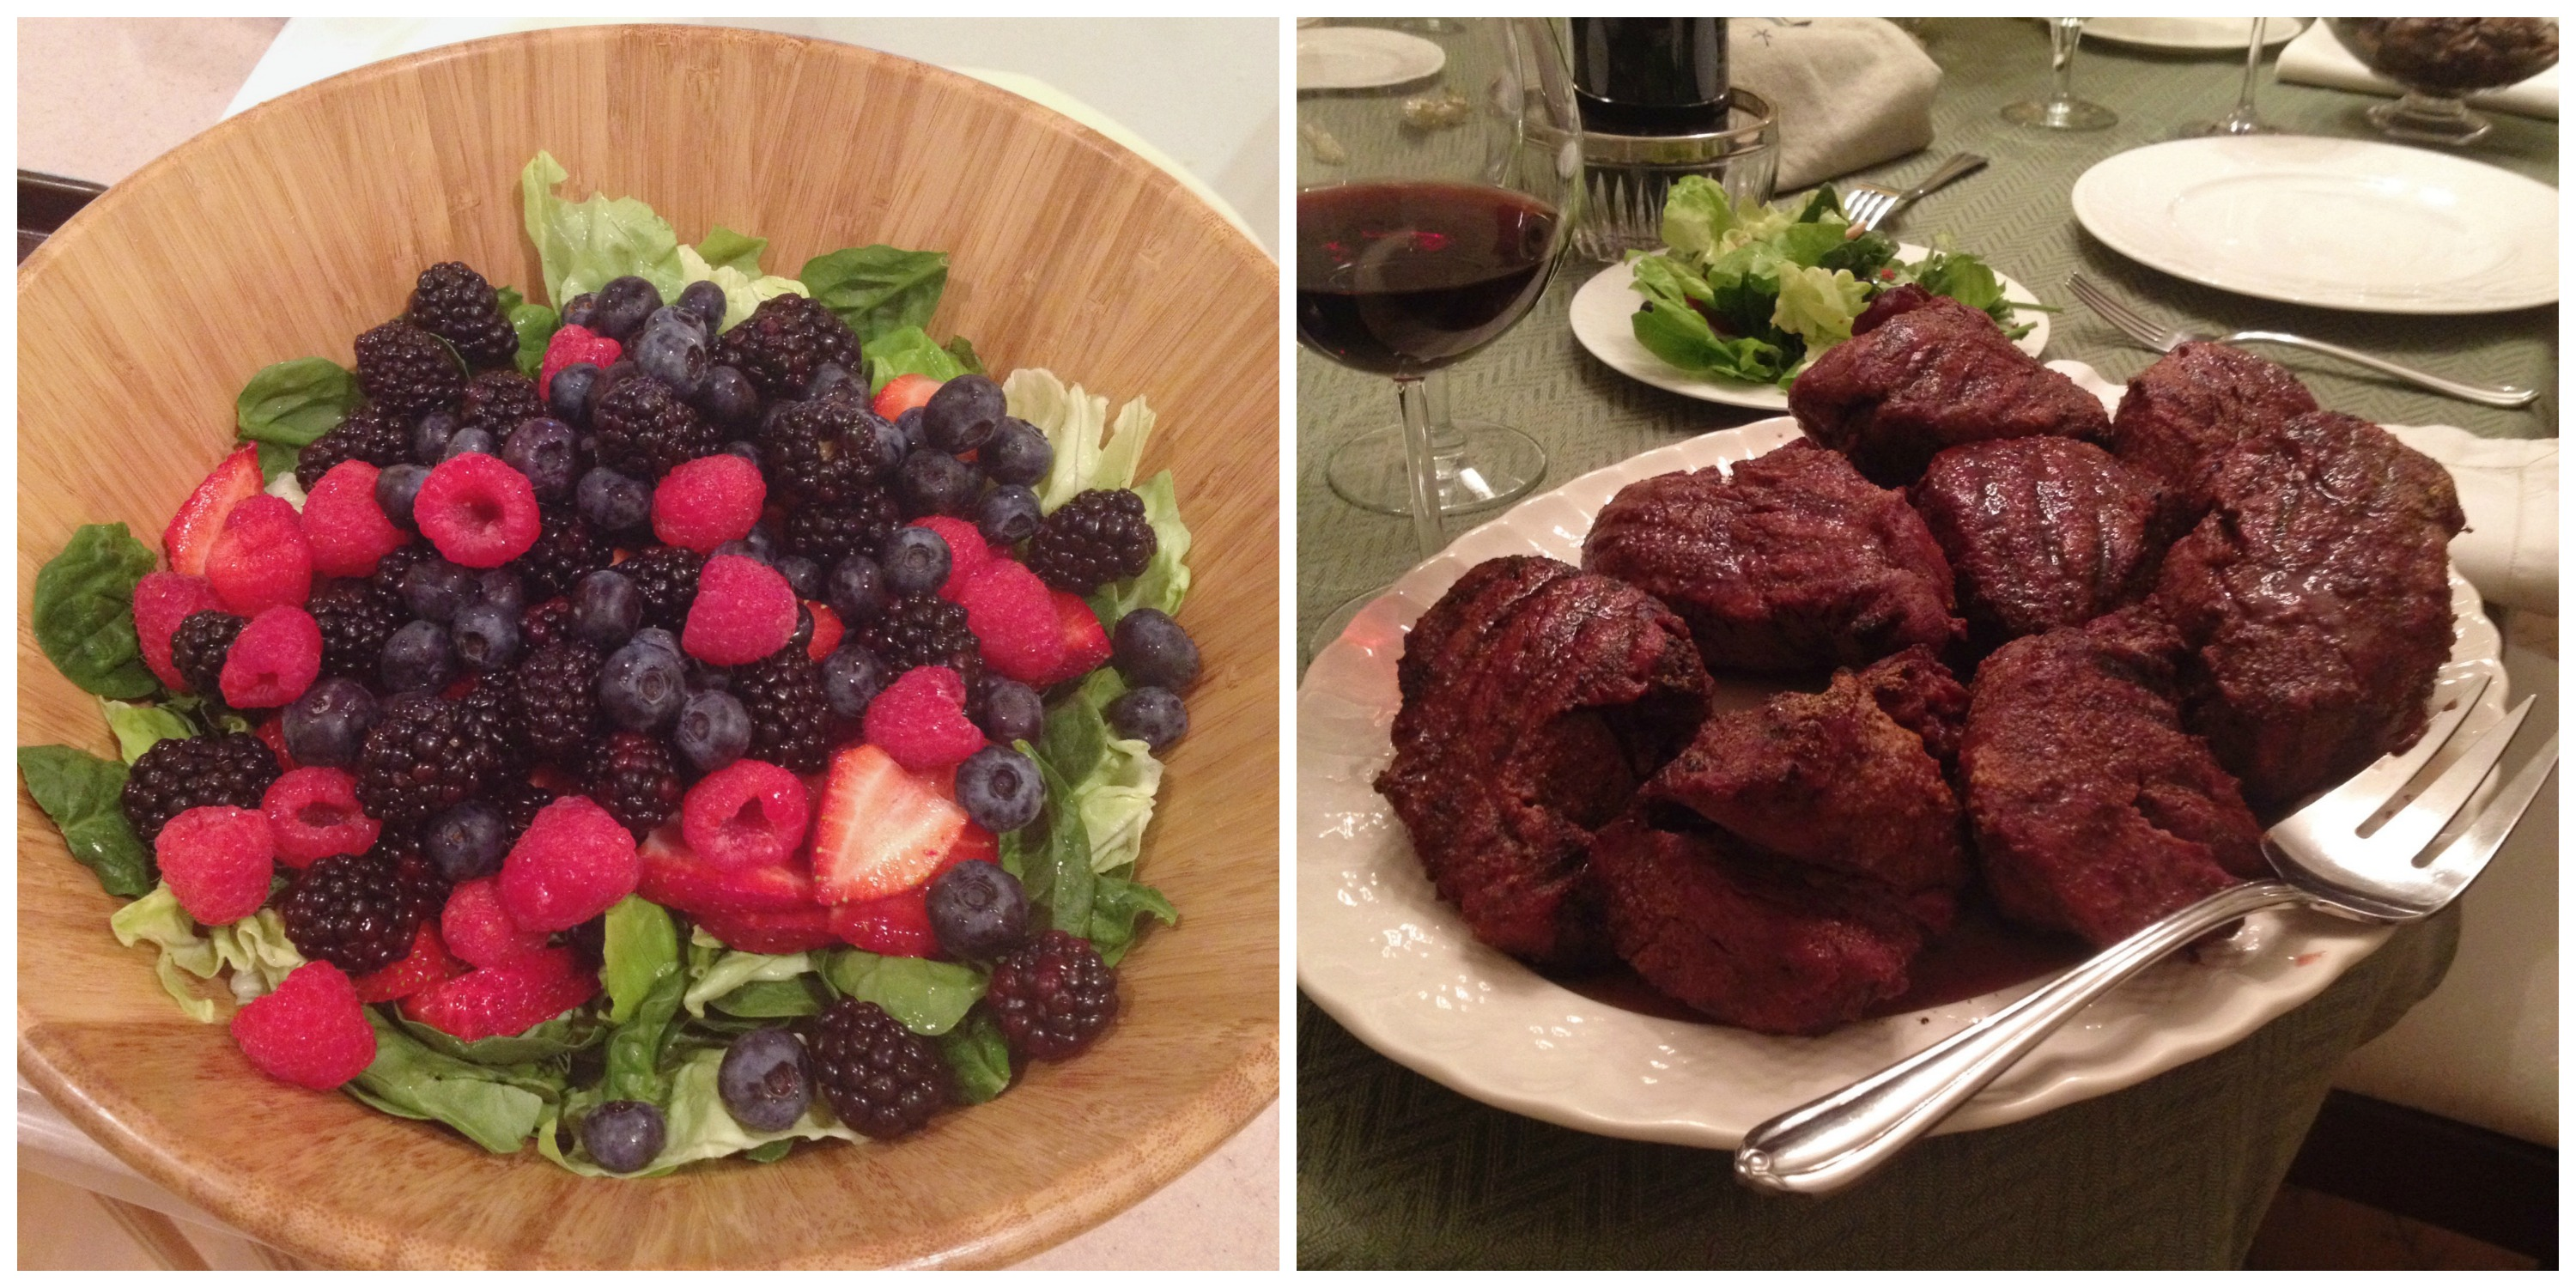 Steak + The Makings of a Salad